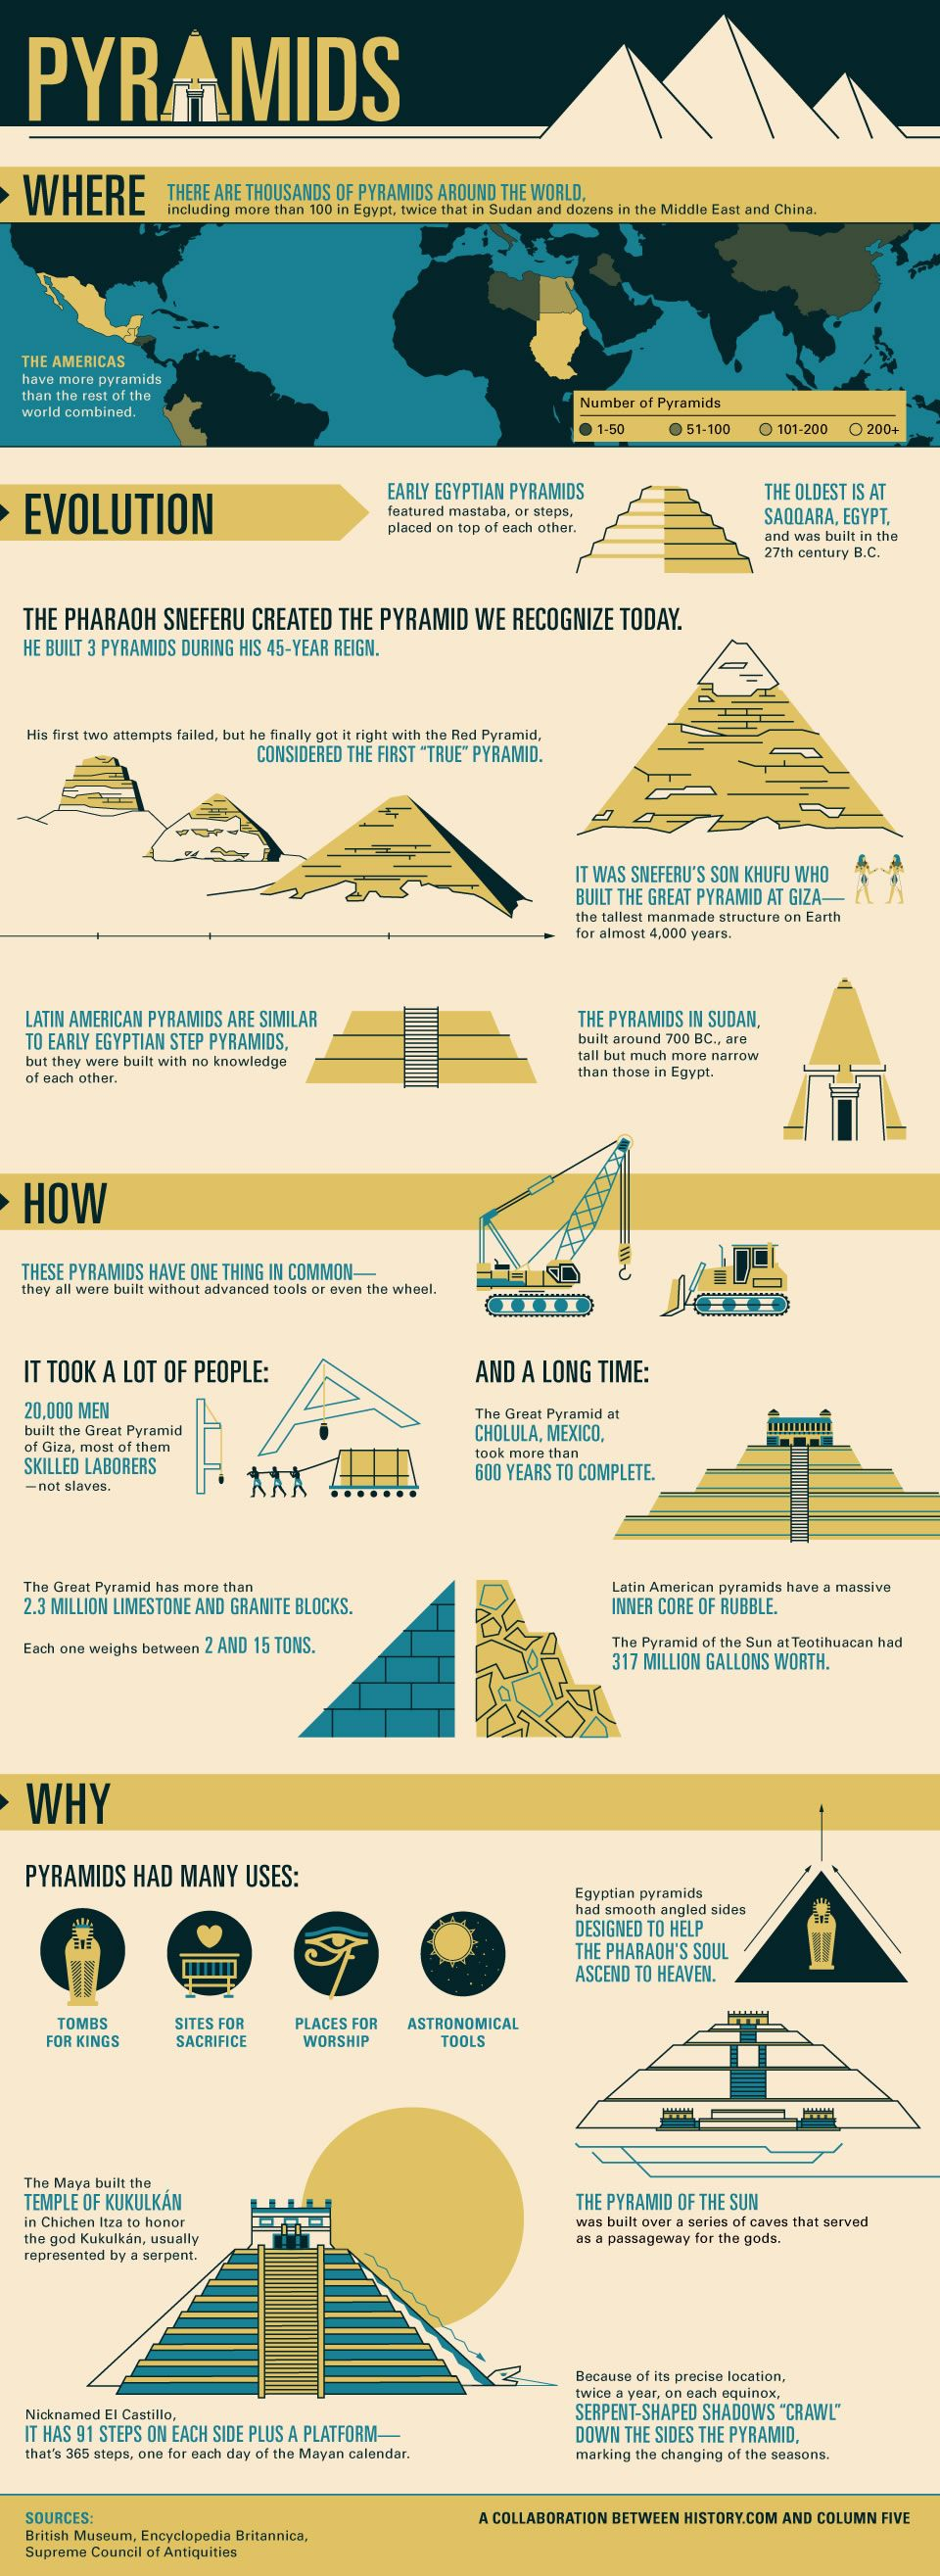 History of Pyramids #infographic | Infographic and History